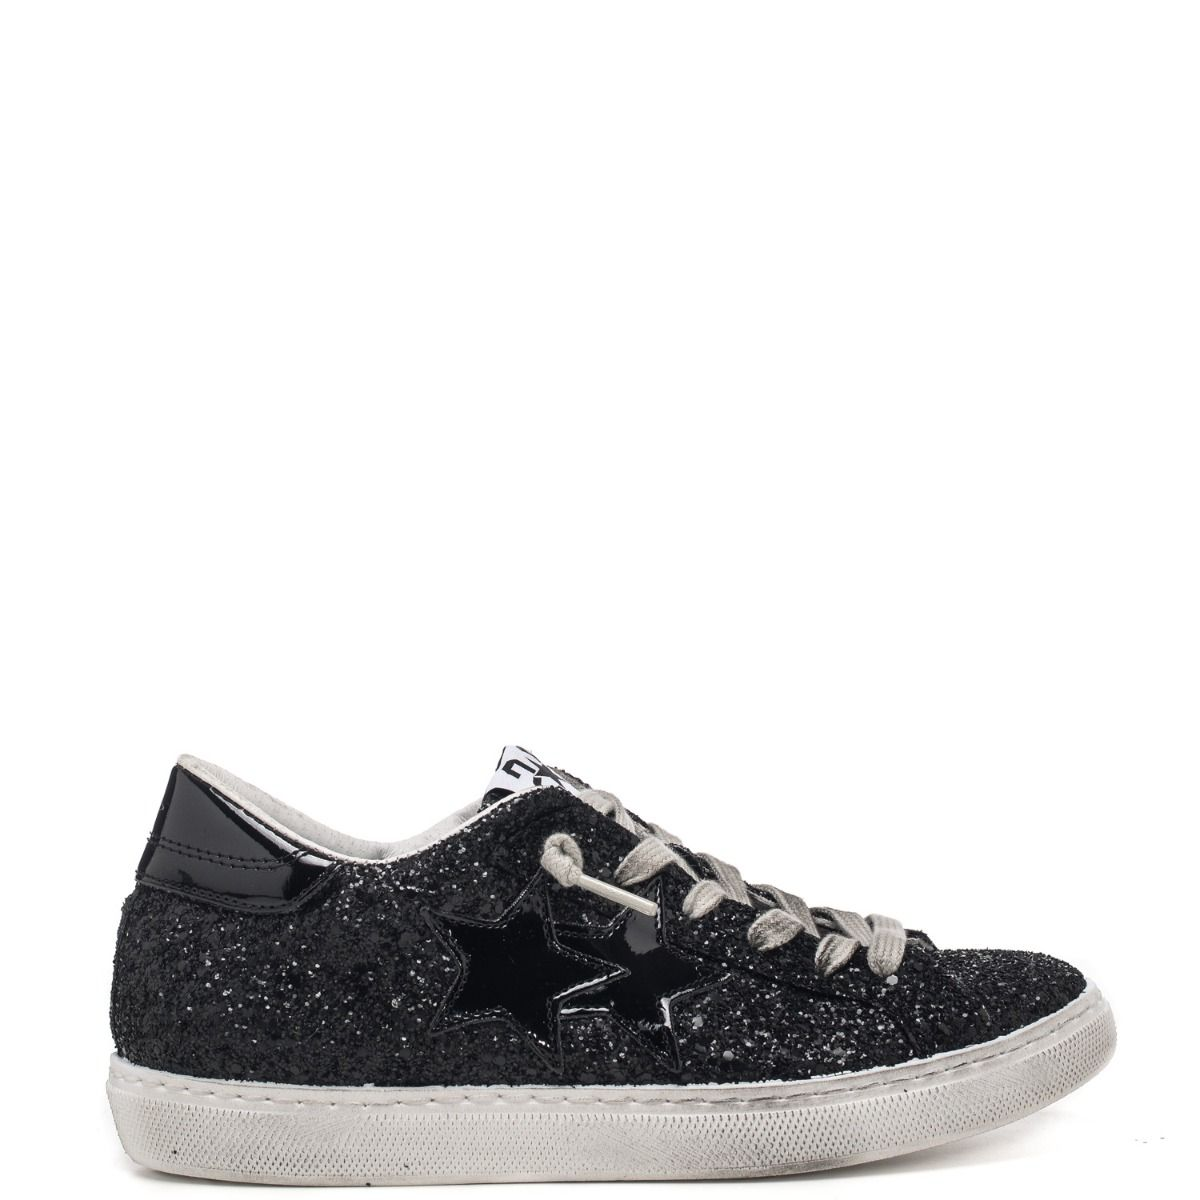 2 Star sneakers 2sd2846